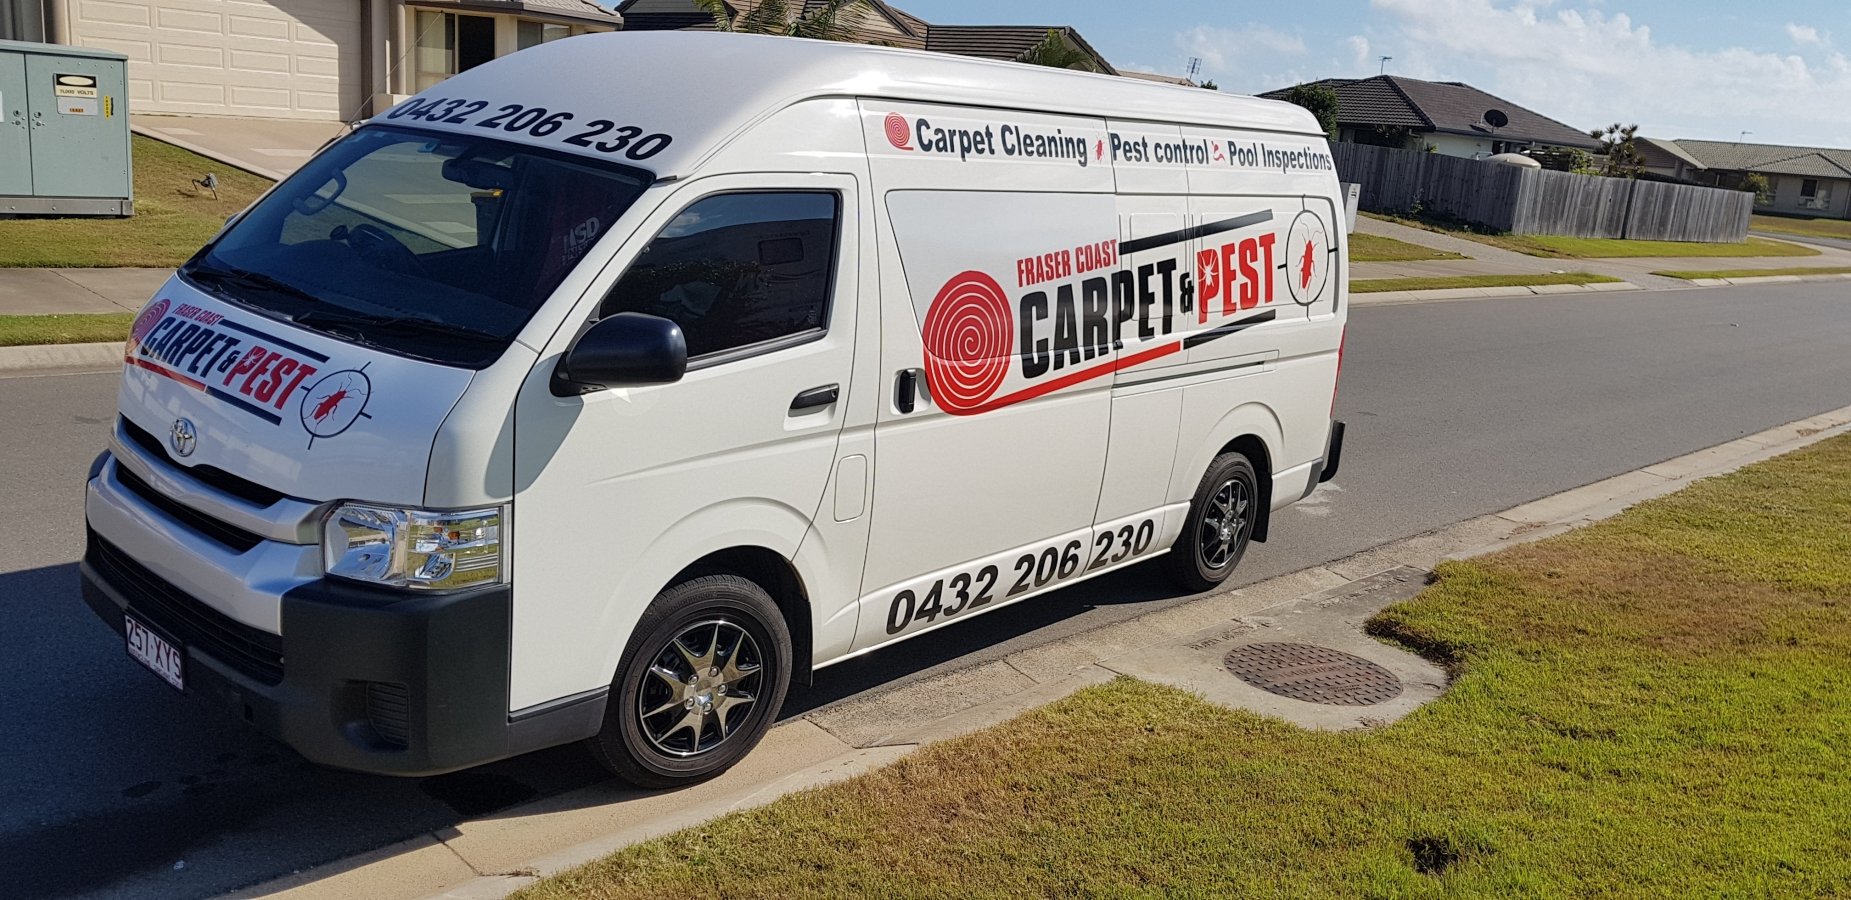 Fraser-Coast-Carpet-and-Pest-Van-3